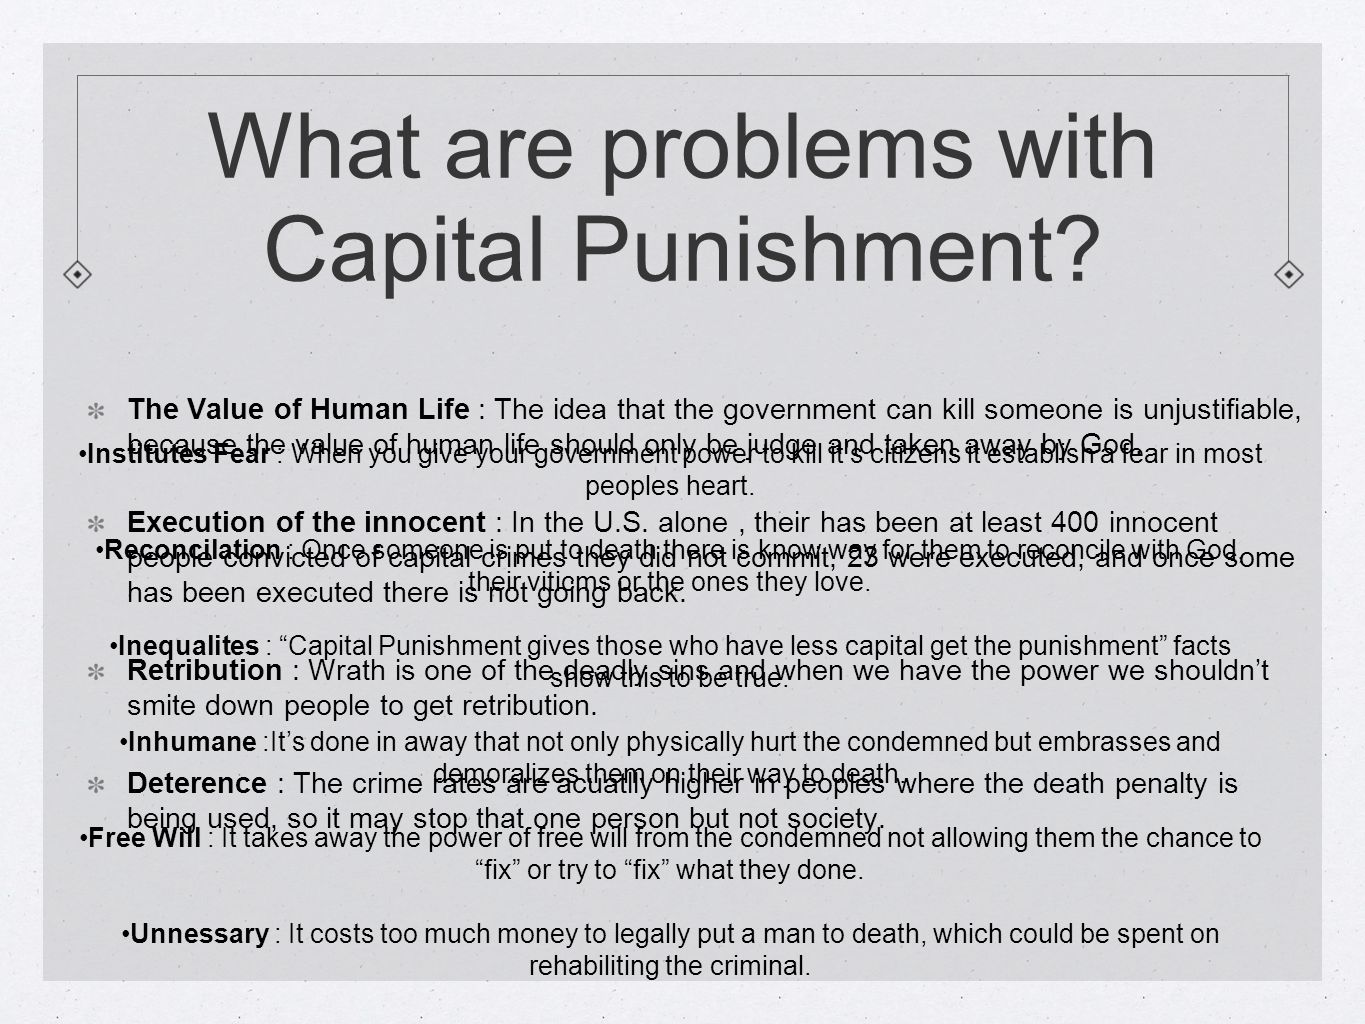 capital punishment history and methods - ppt download